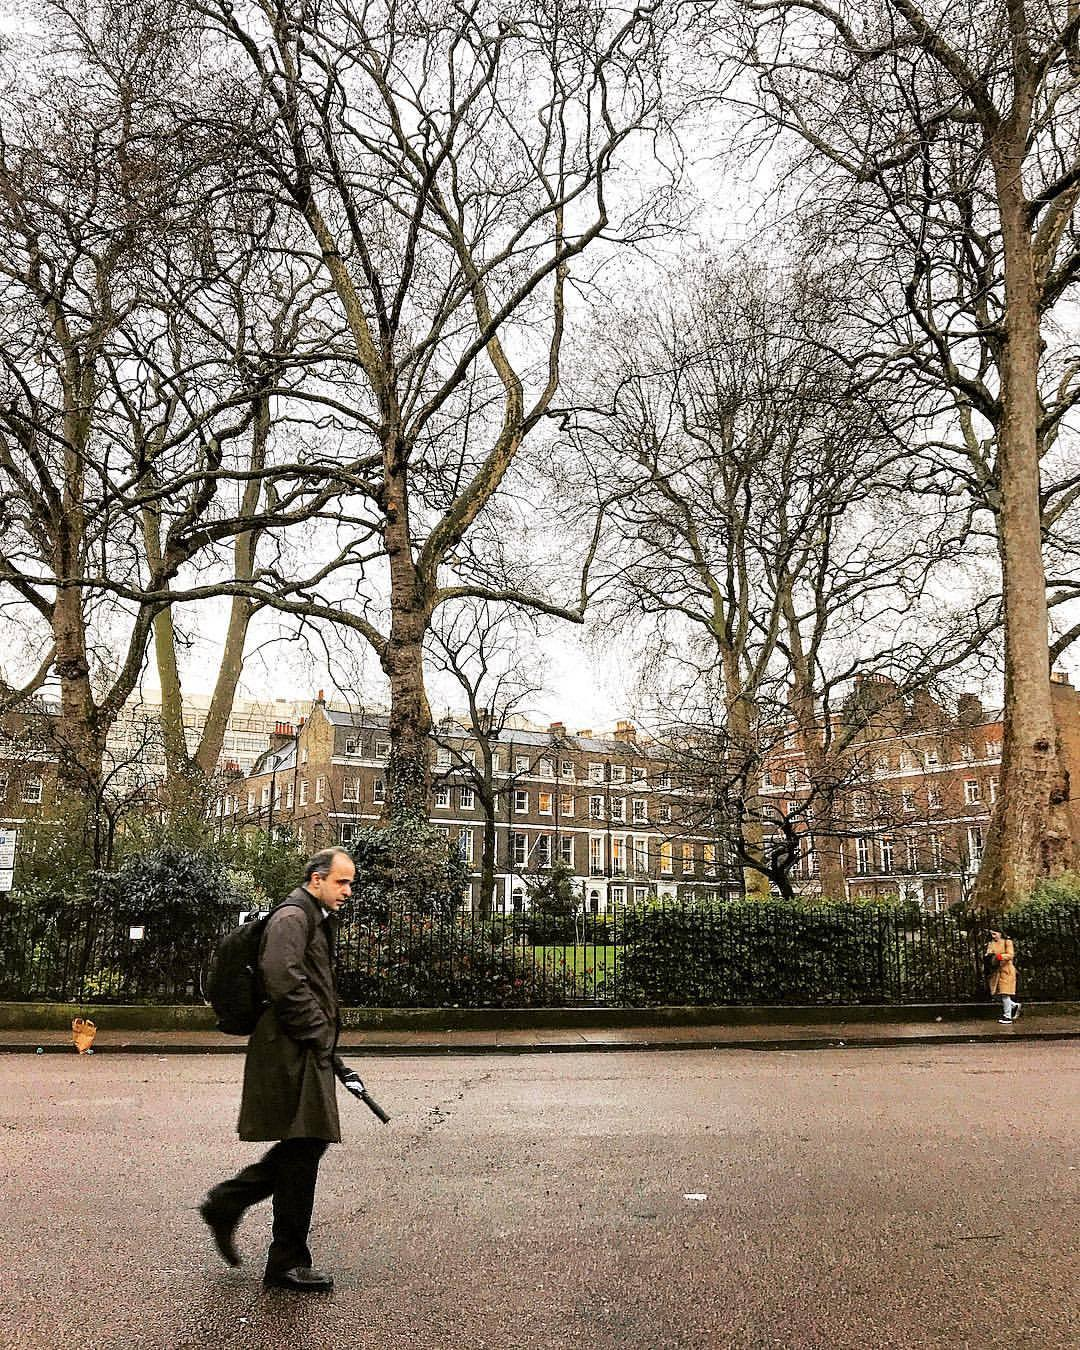 """No winter lasts forever; no spring skips its turn.""  Hal Borland (1900-1978), American author and naturalist   -  #unitedkingdom #england #london #bringyourumbrella  (at Marylebone London)"